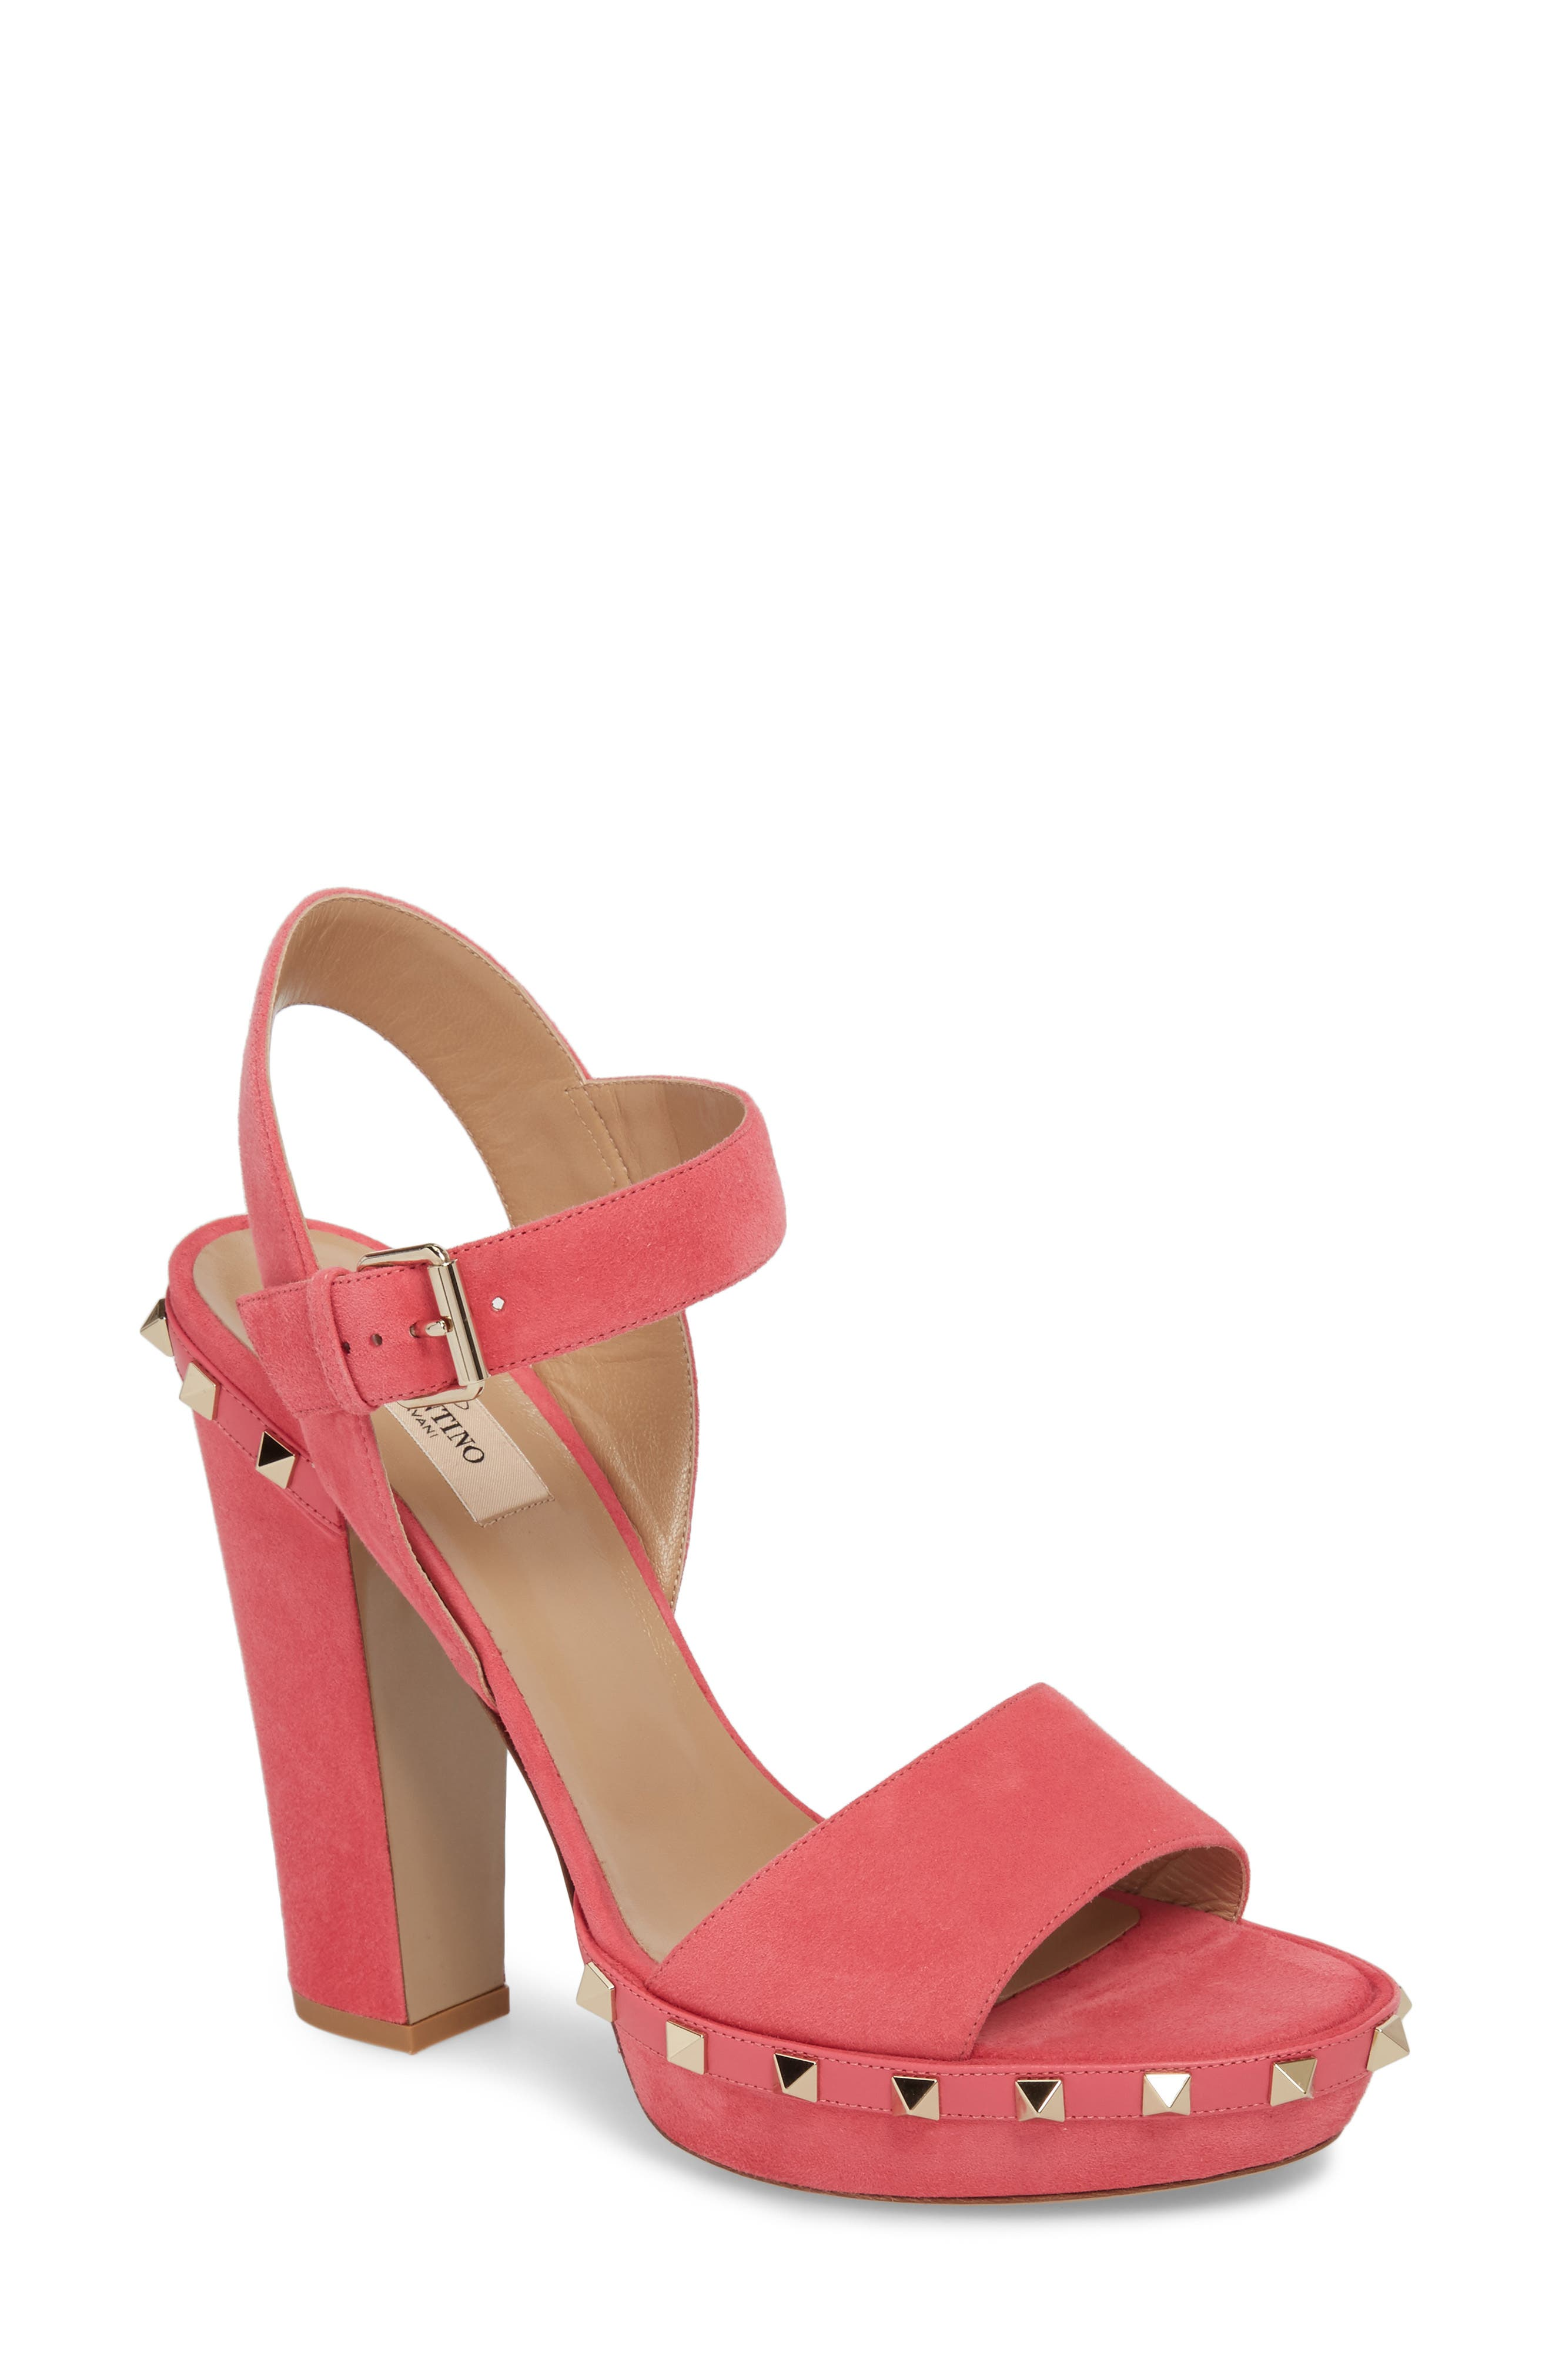 Rockstud Platform Sandal,                             Main thumbnail 1, color,                             Shadow Pink